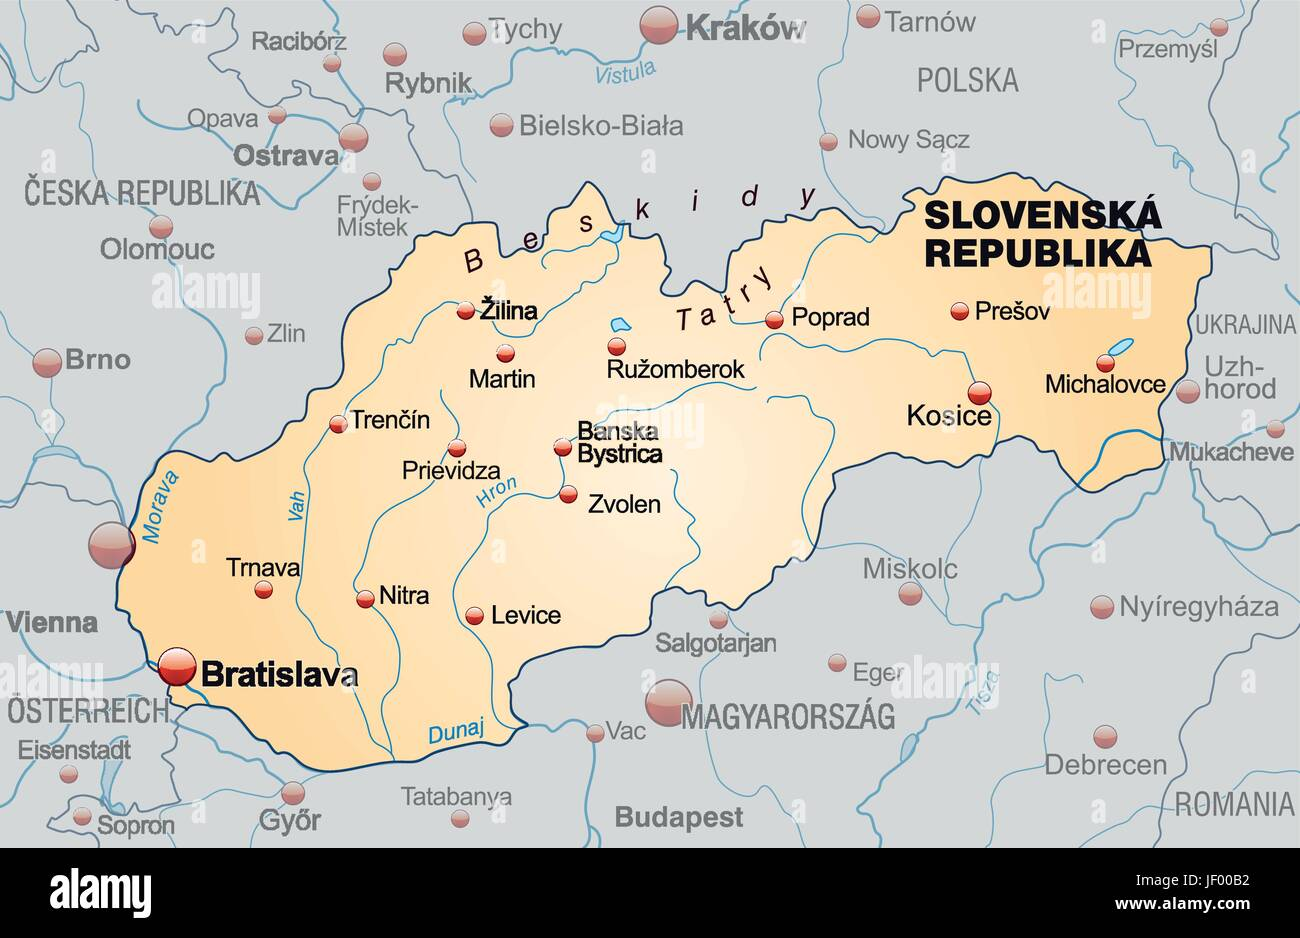 slovakia, border, card, synopsis, borders, atlas, map of the world ...